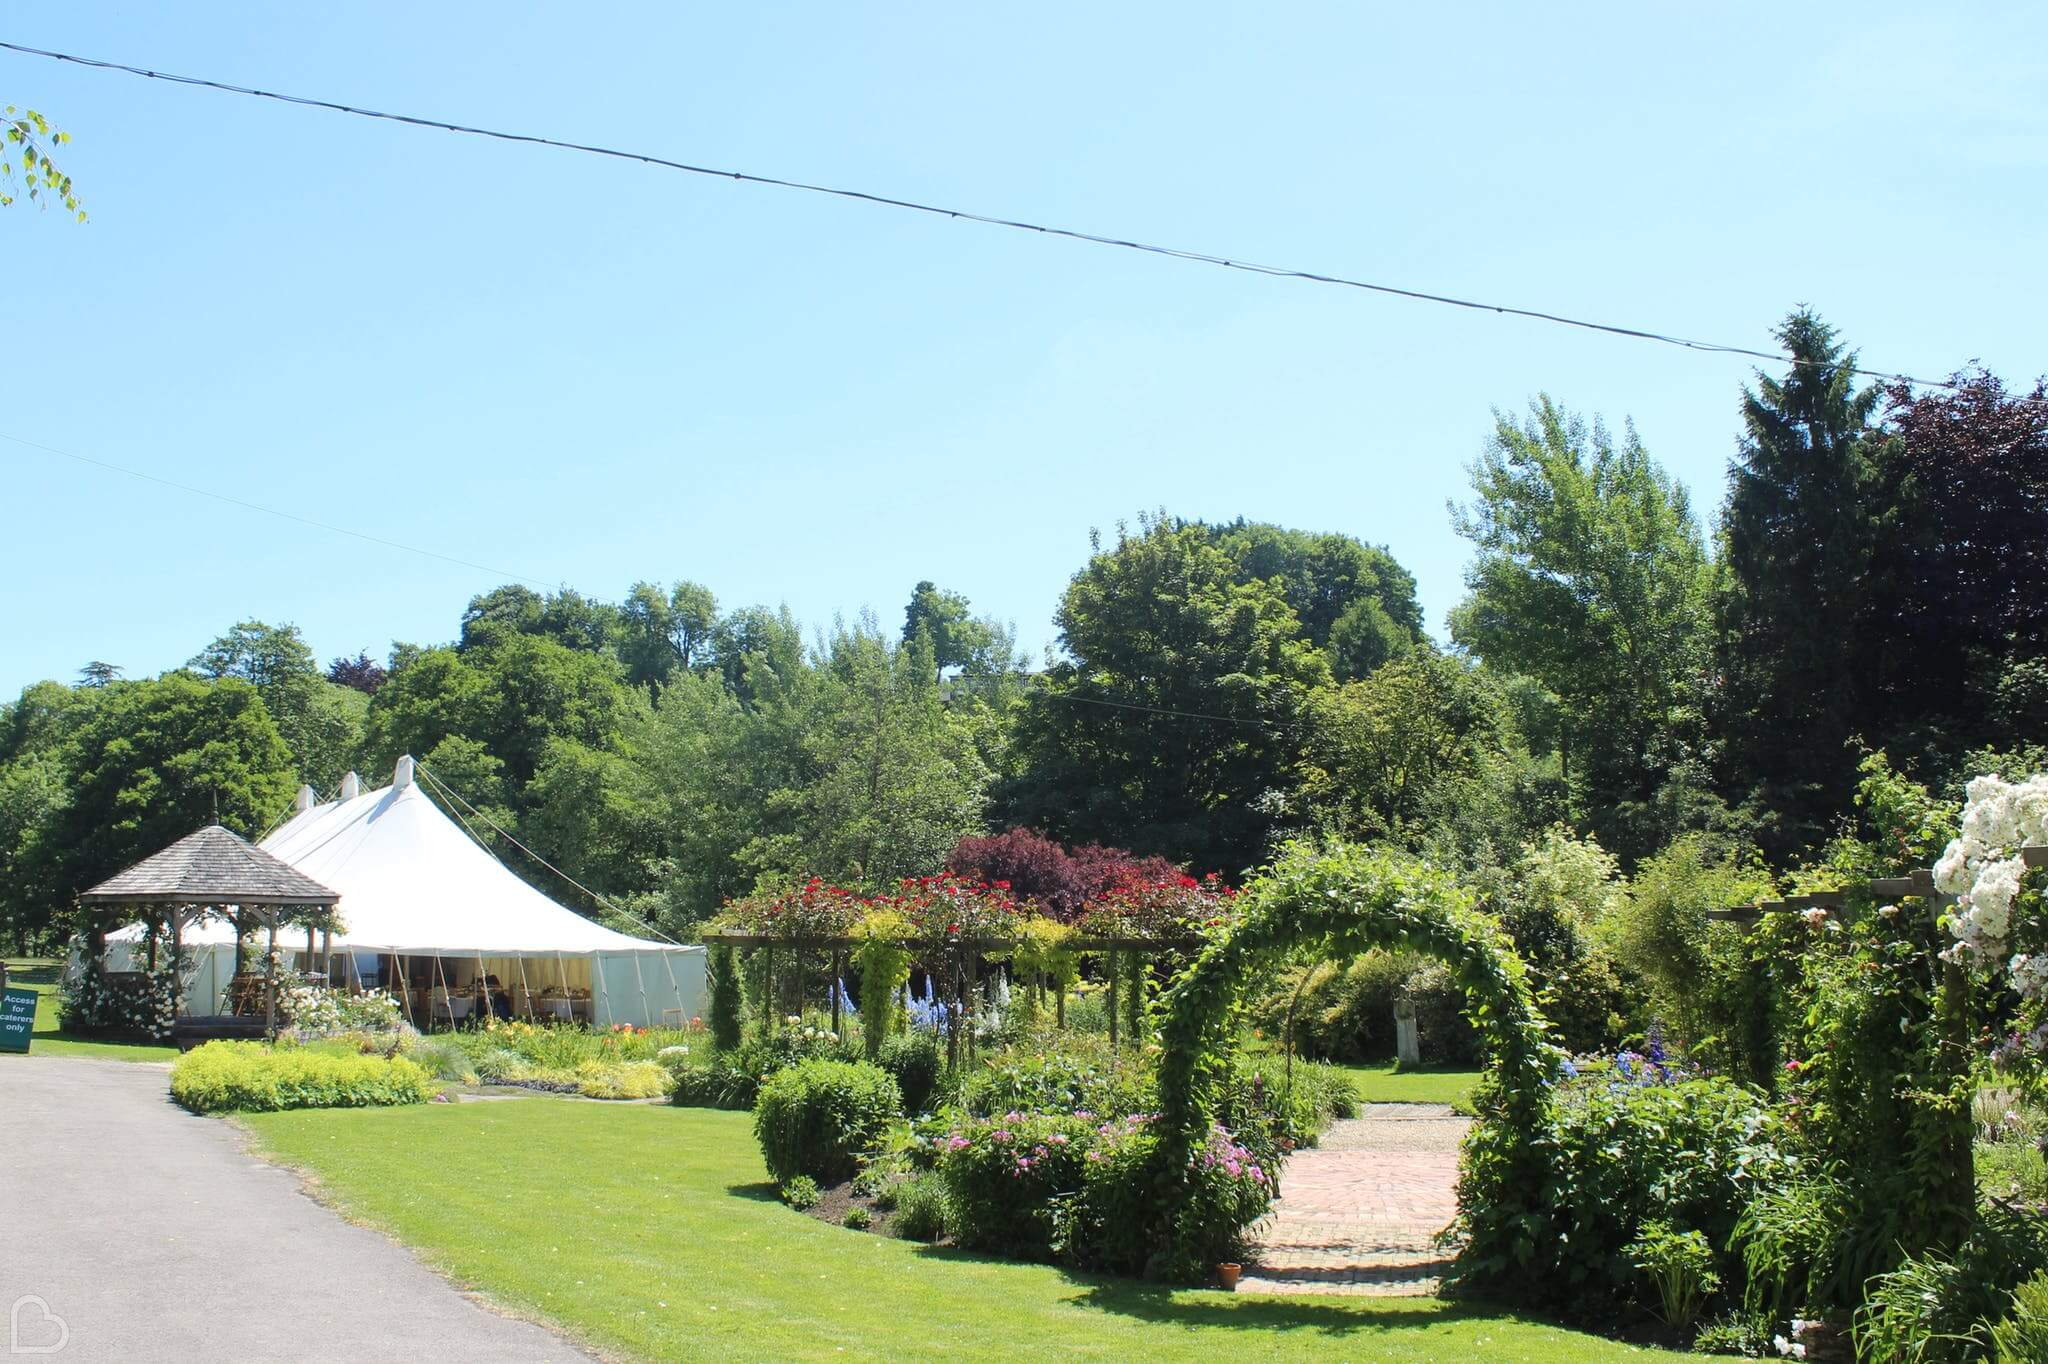 Beautiful wedding venue on a beautiful sunny day. Gants Mill & Garden is set up with marquees and a nicely kept garden.